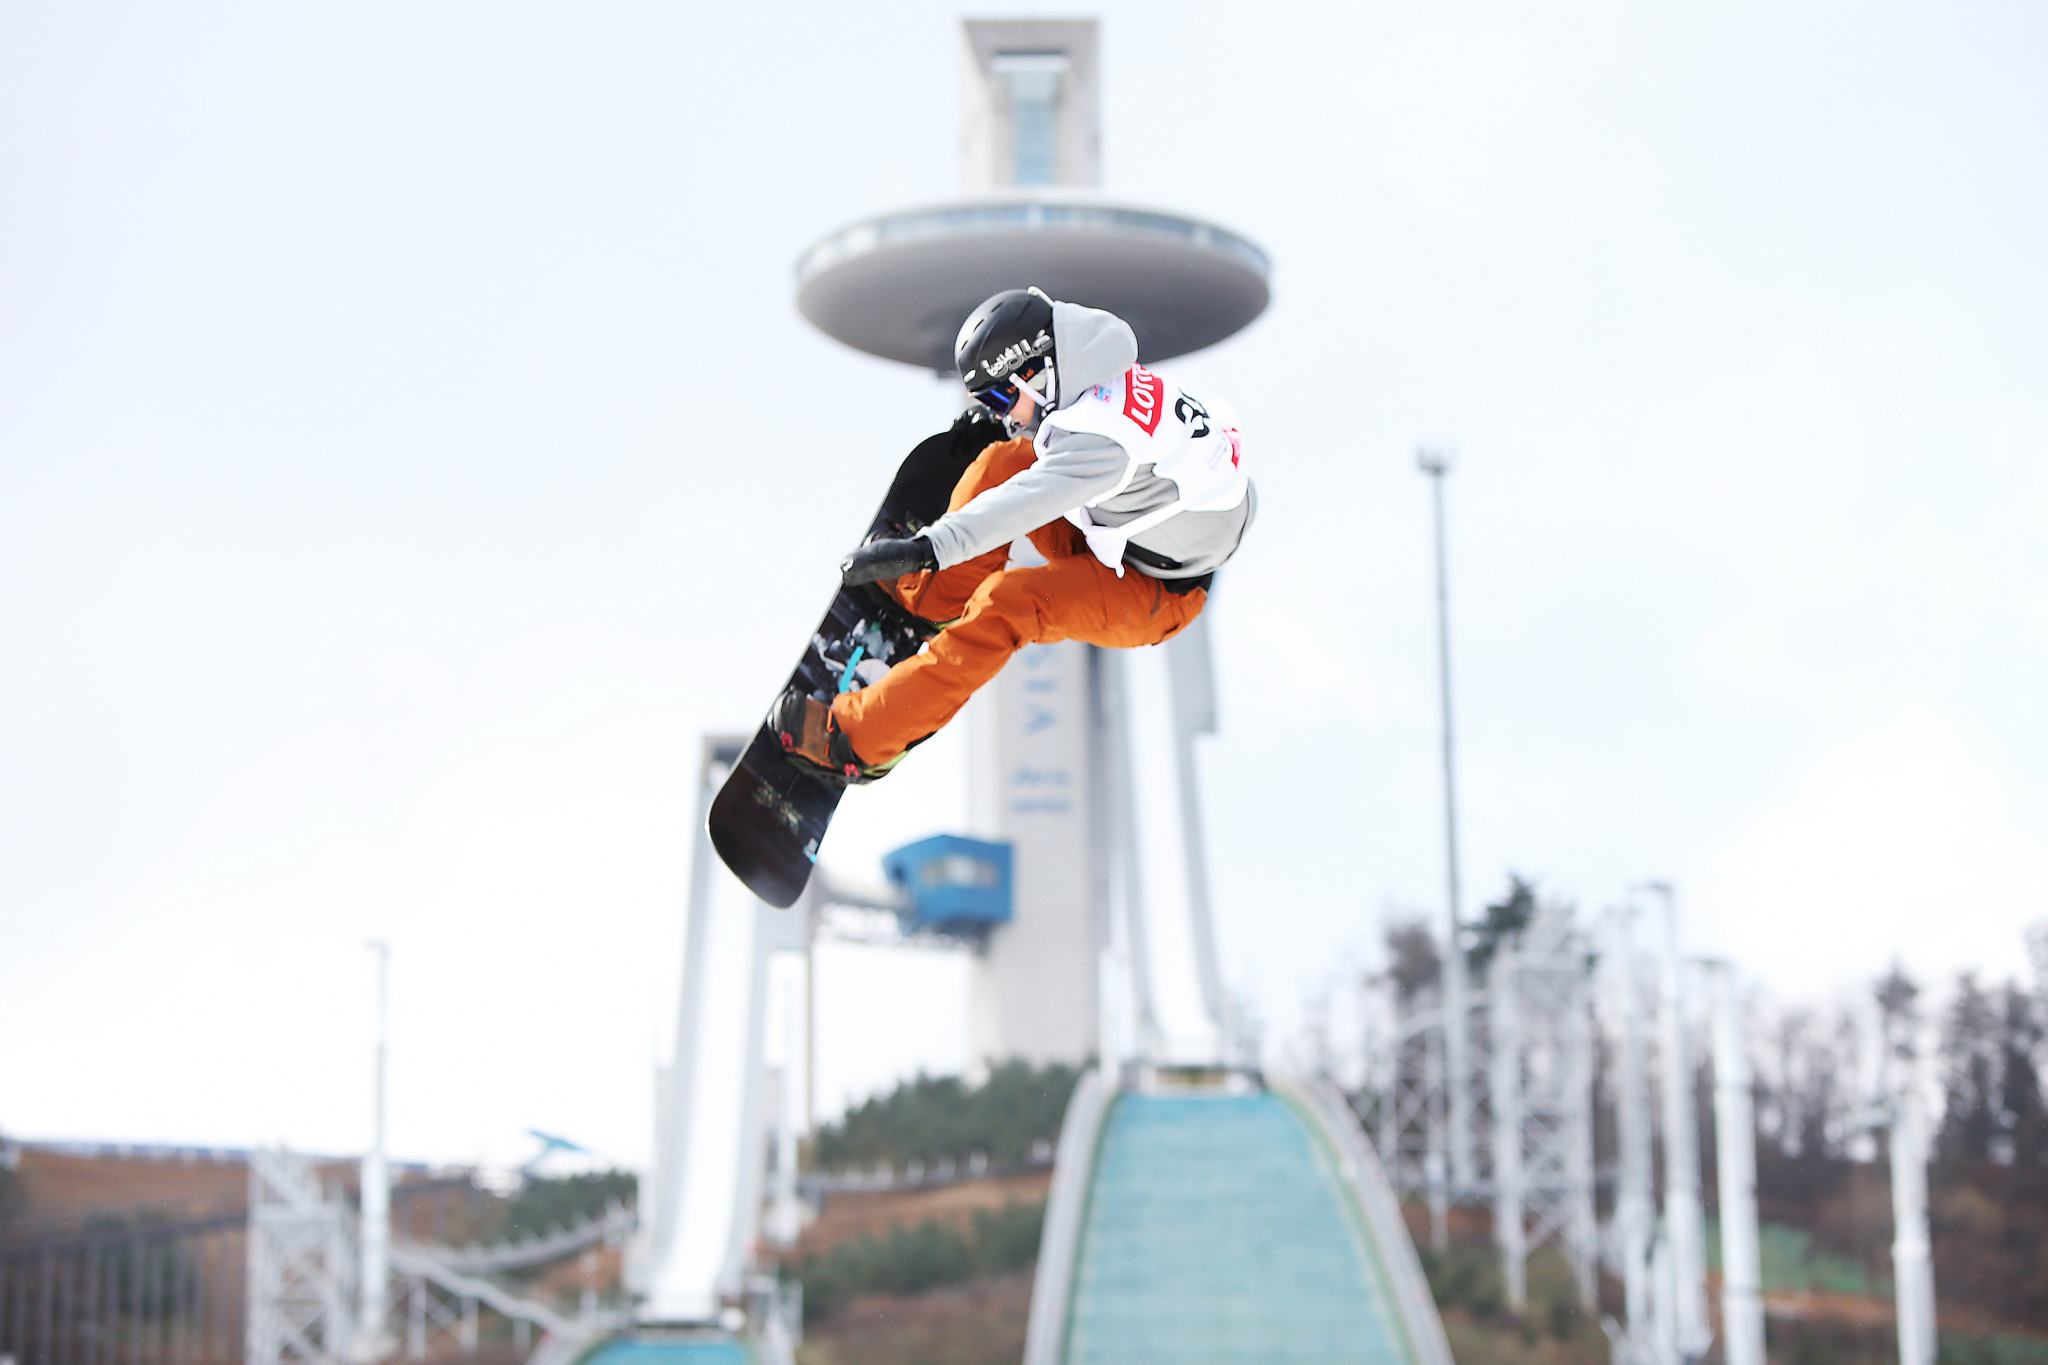 South Koreans may be optimistic that Pyeongchang 2018 will be a success but less than 40 per cent of them are actually interested in the Winter Olympics and even less plan to buy tickets for the Games ©Pyeongchang 2018